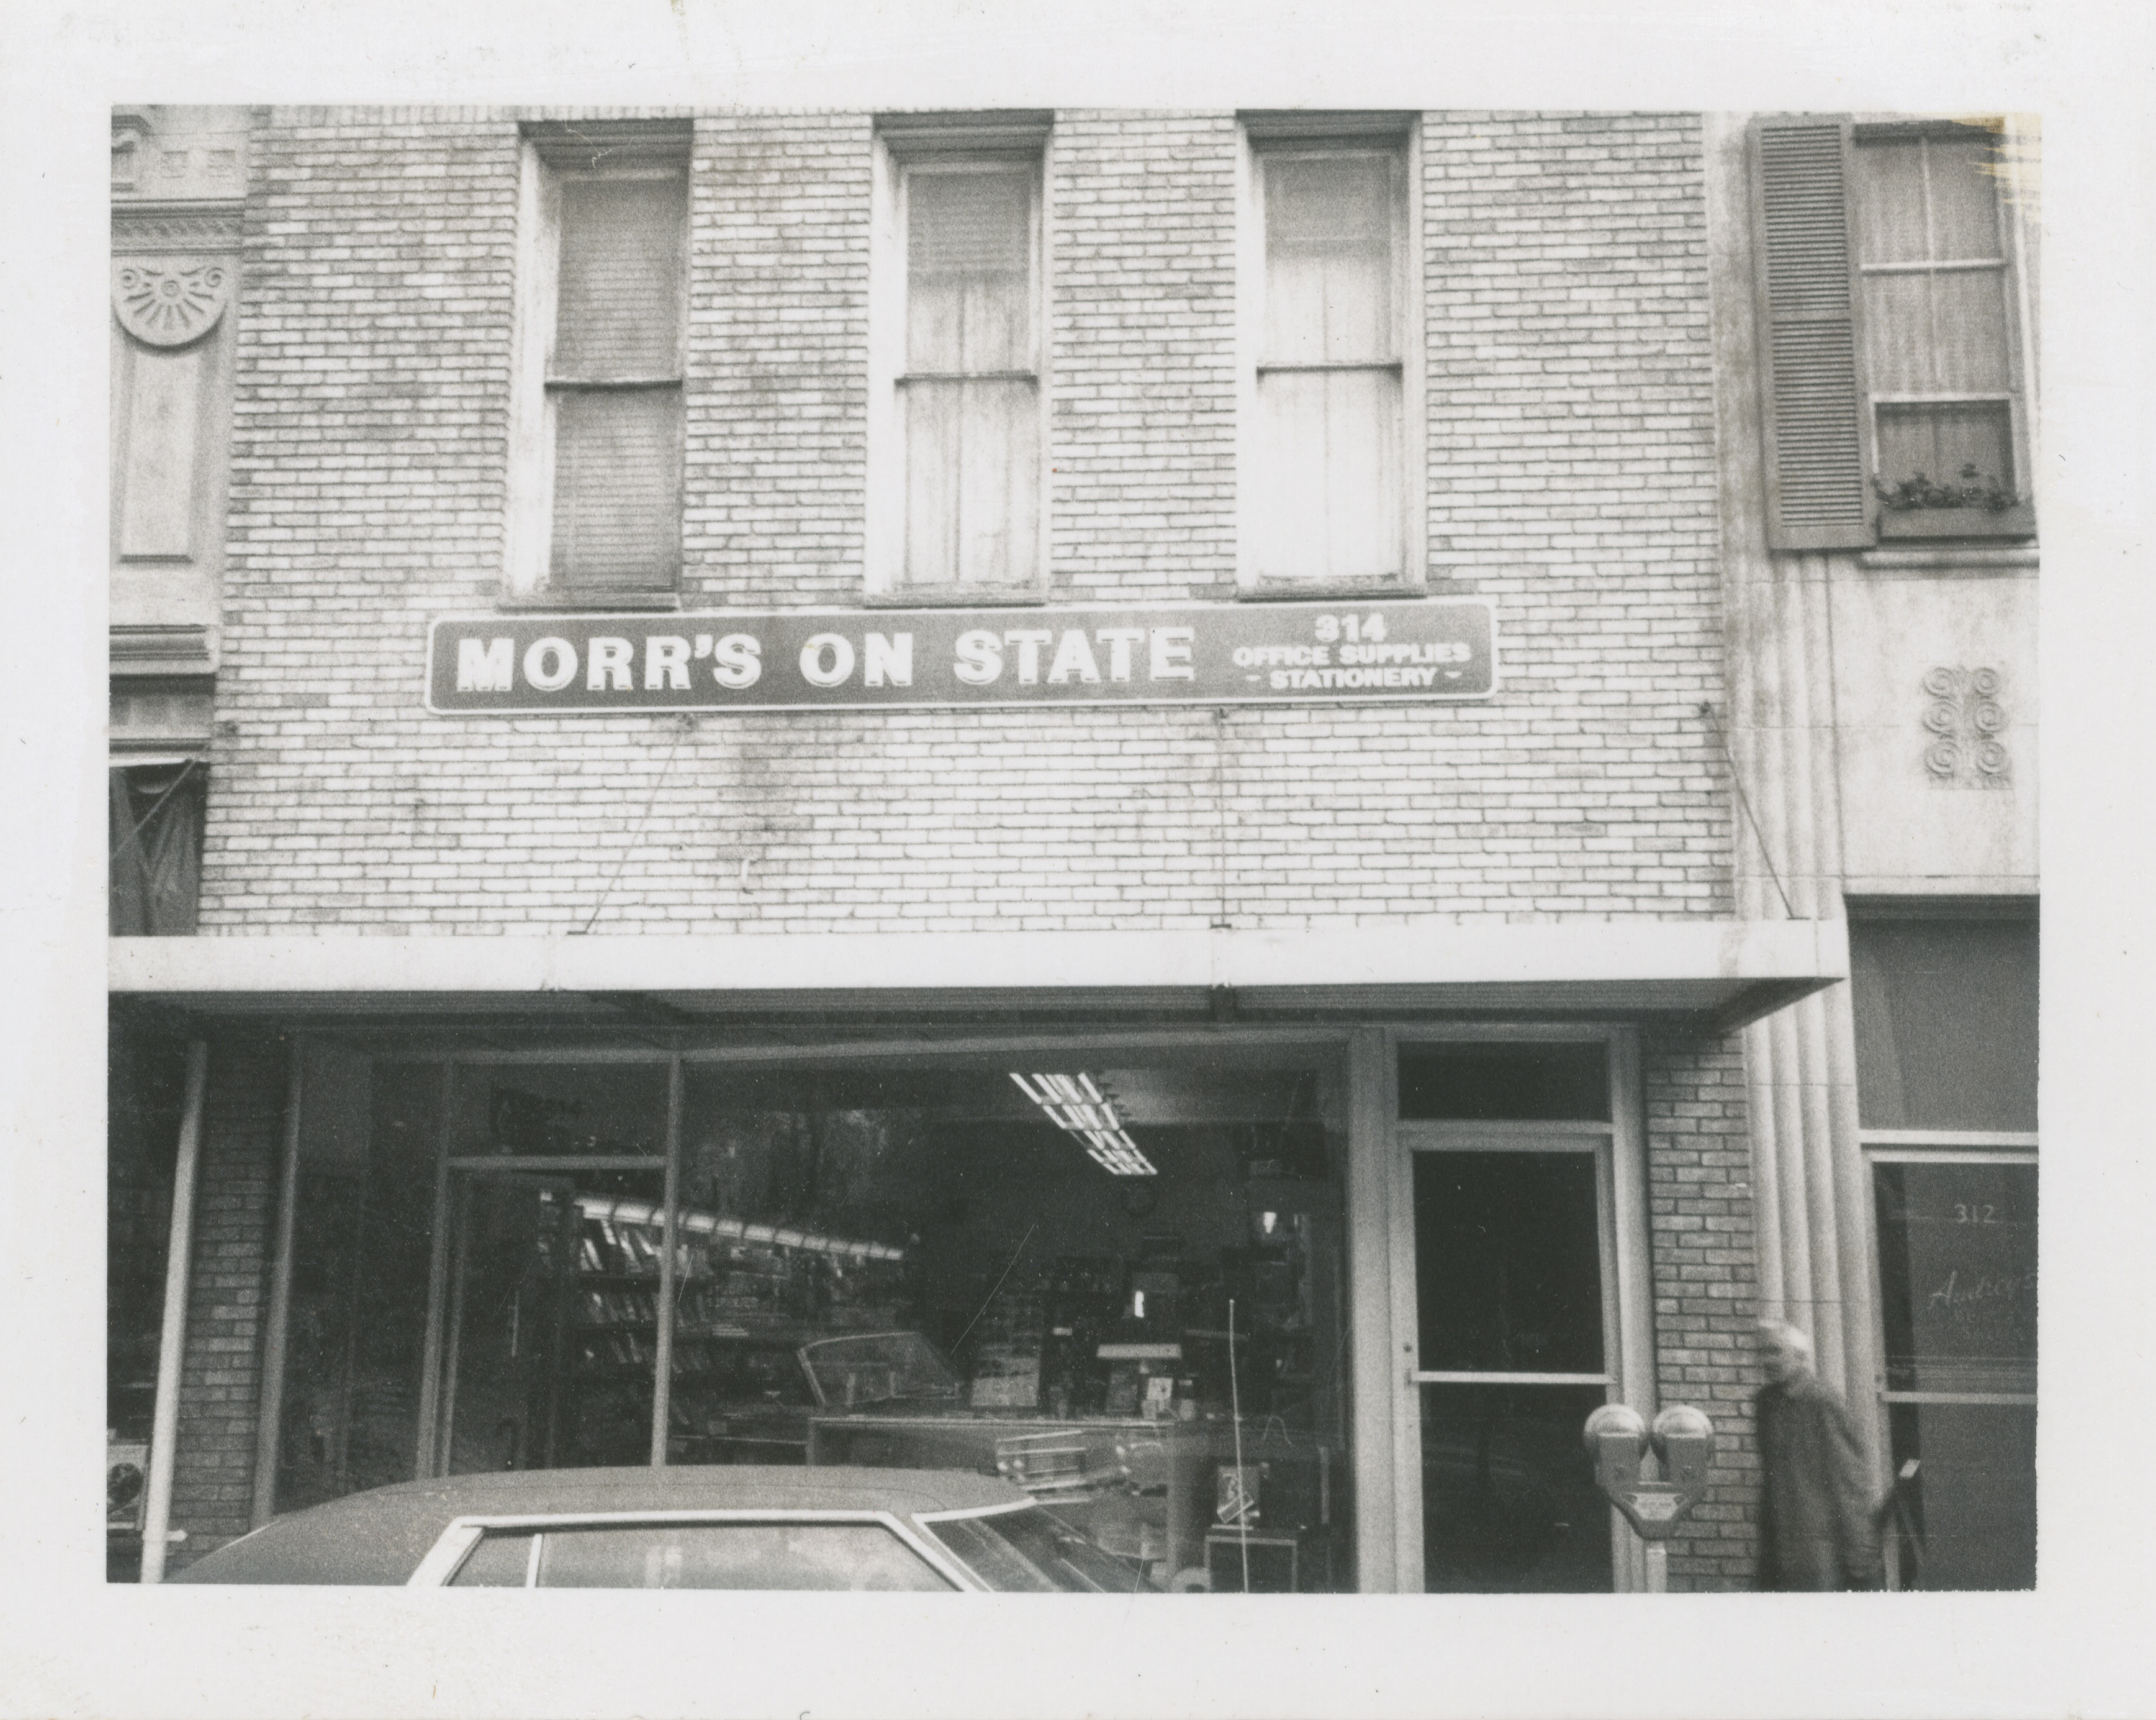 Morr's On State, 1973 image